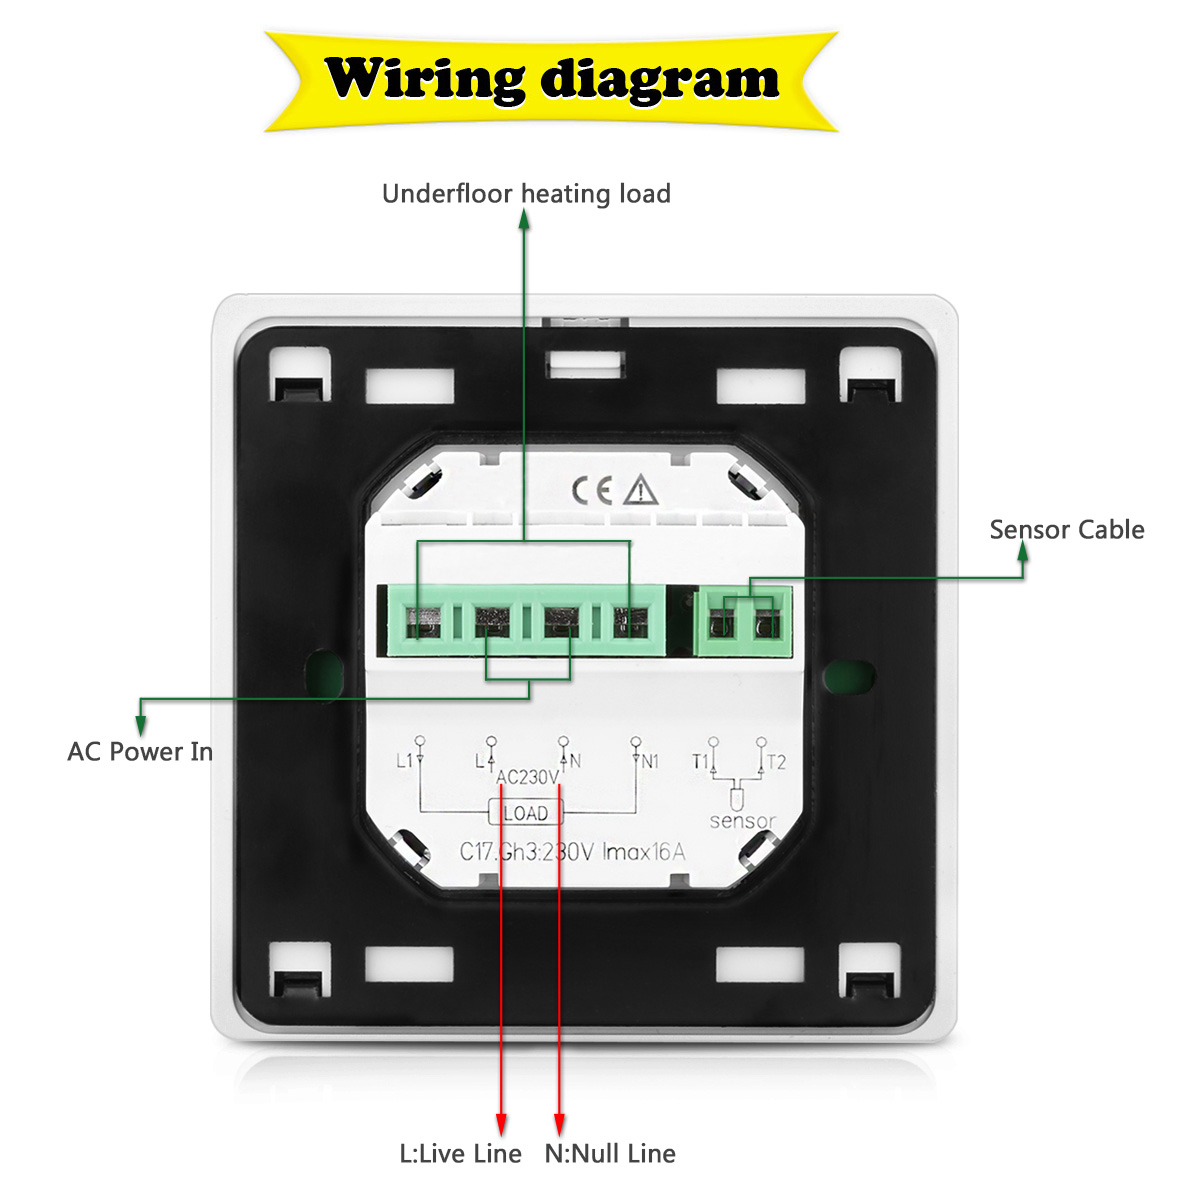 C17 Wiring Diagram Simple 2002 Bmw 323i Engine Floureon Gh3 For Home Office Wifi Programming Heating Thermostat